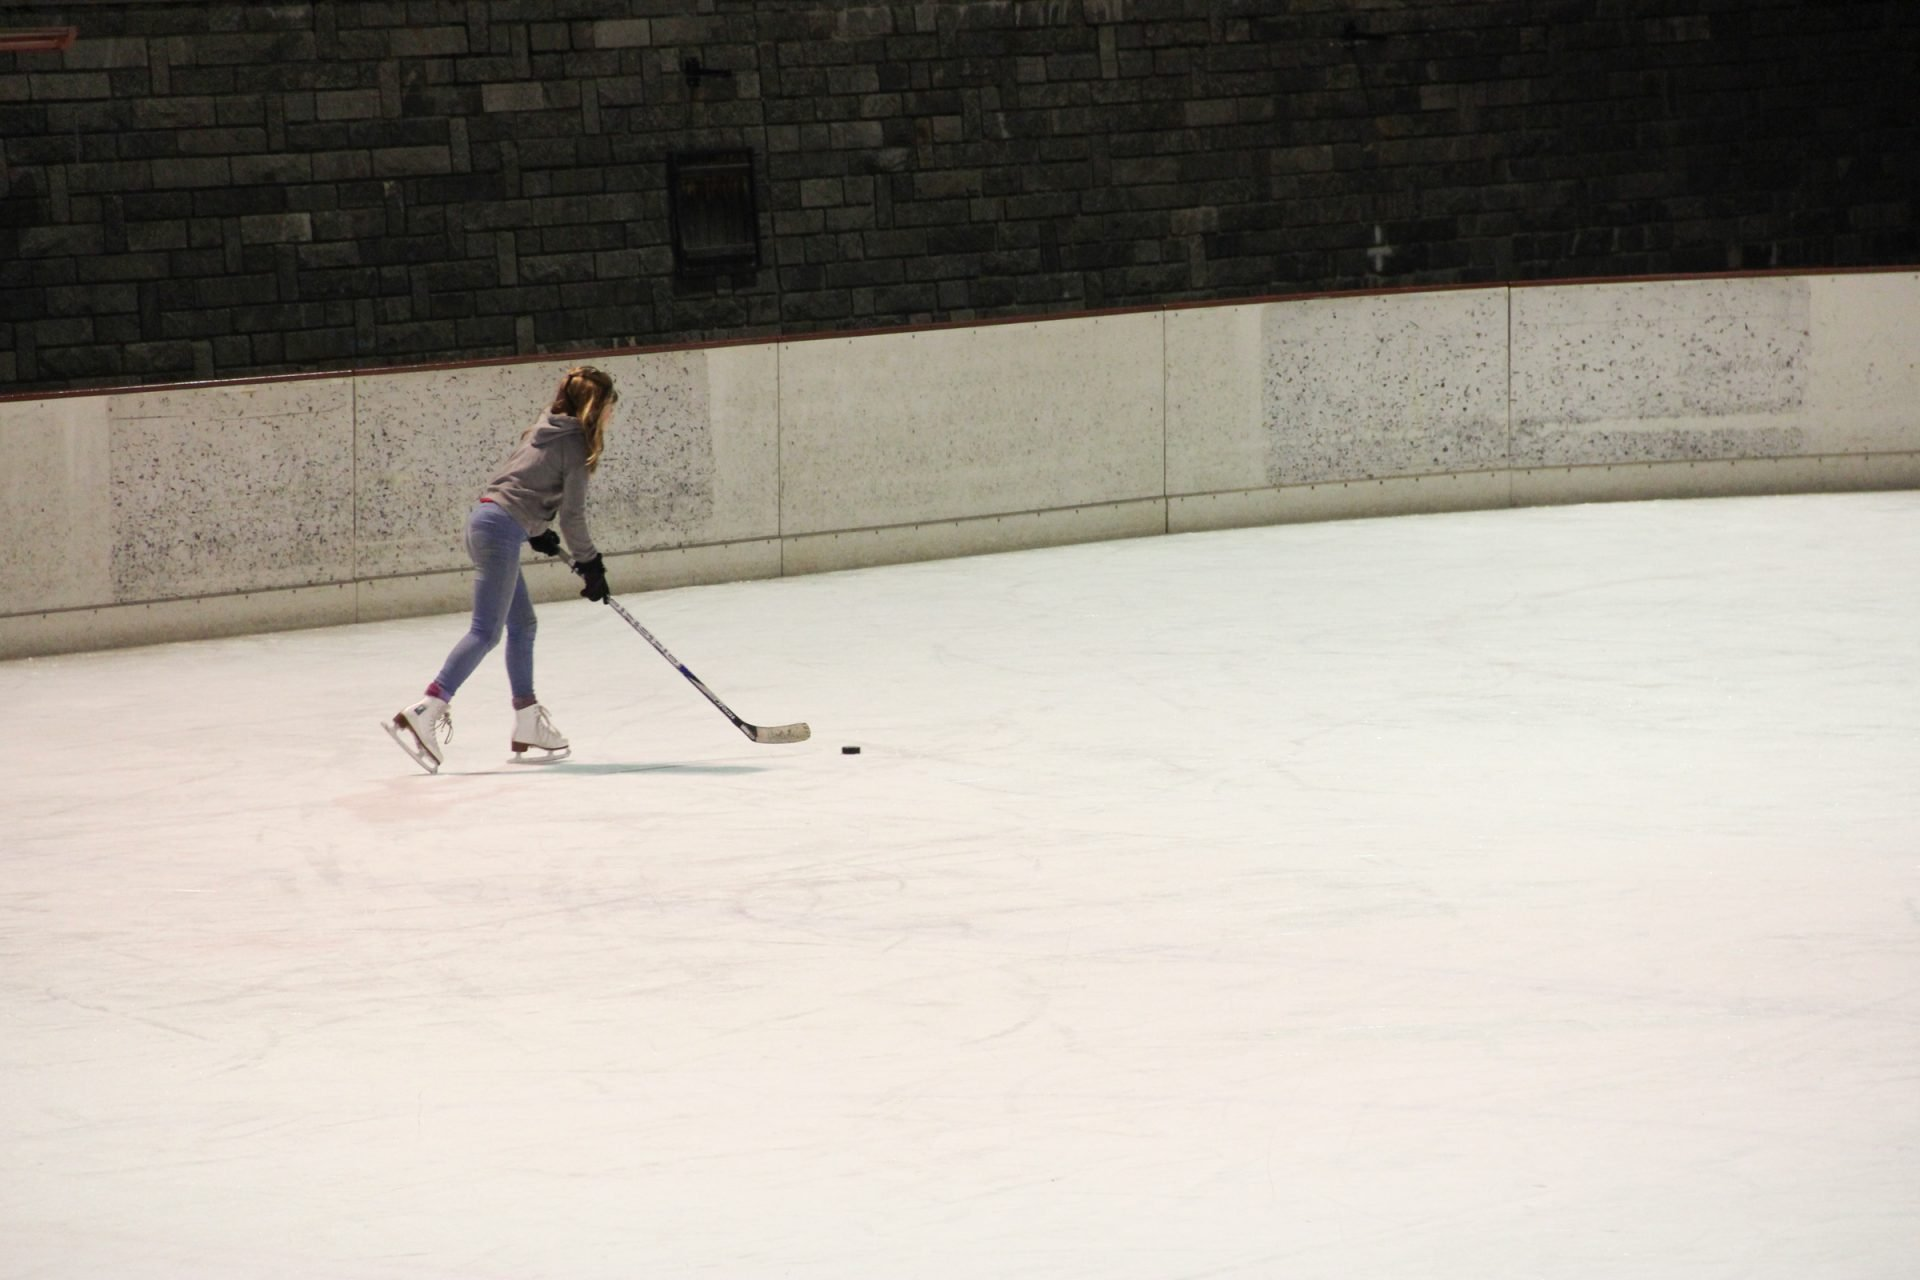 Girl Skating on Ice with Hockey Stick